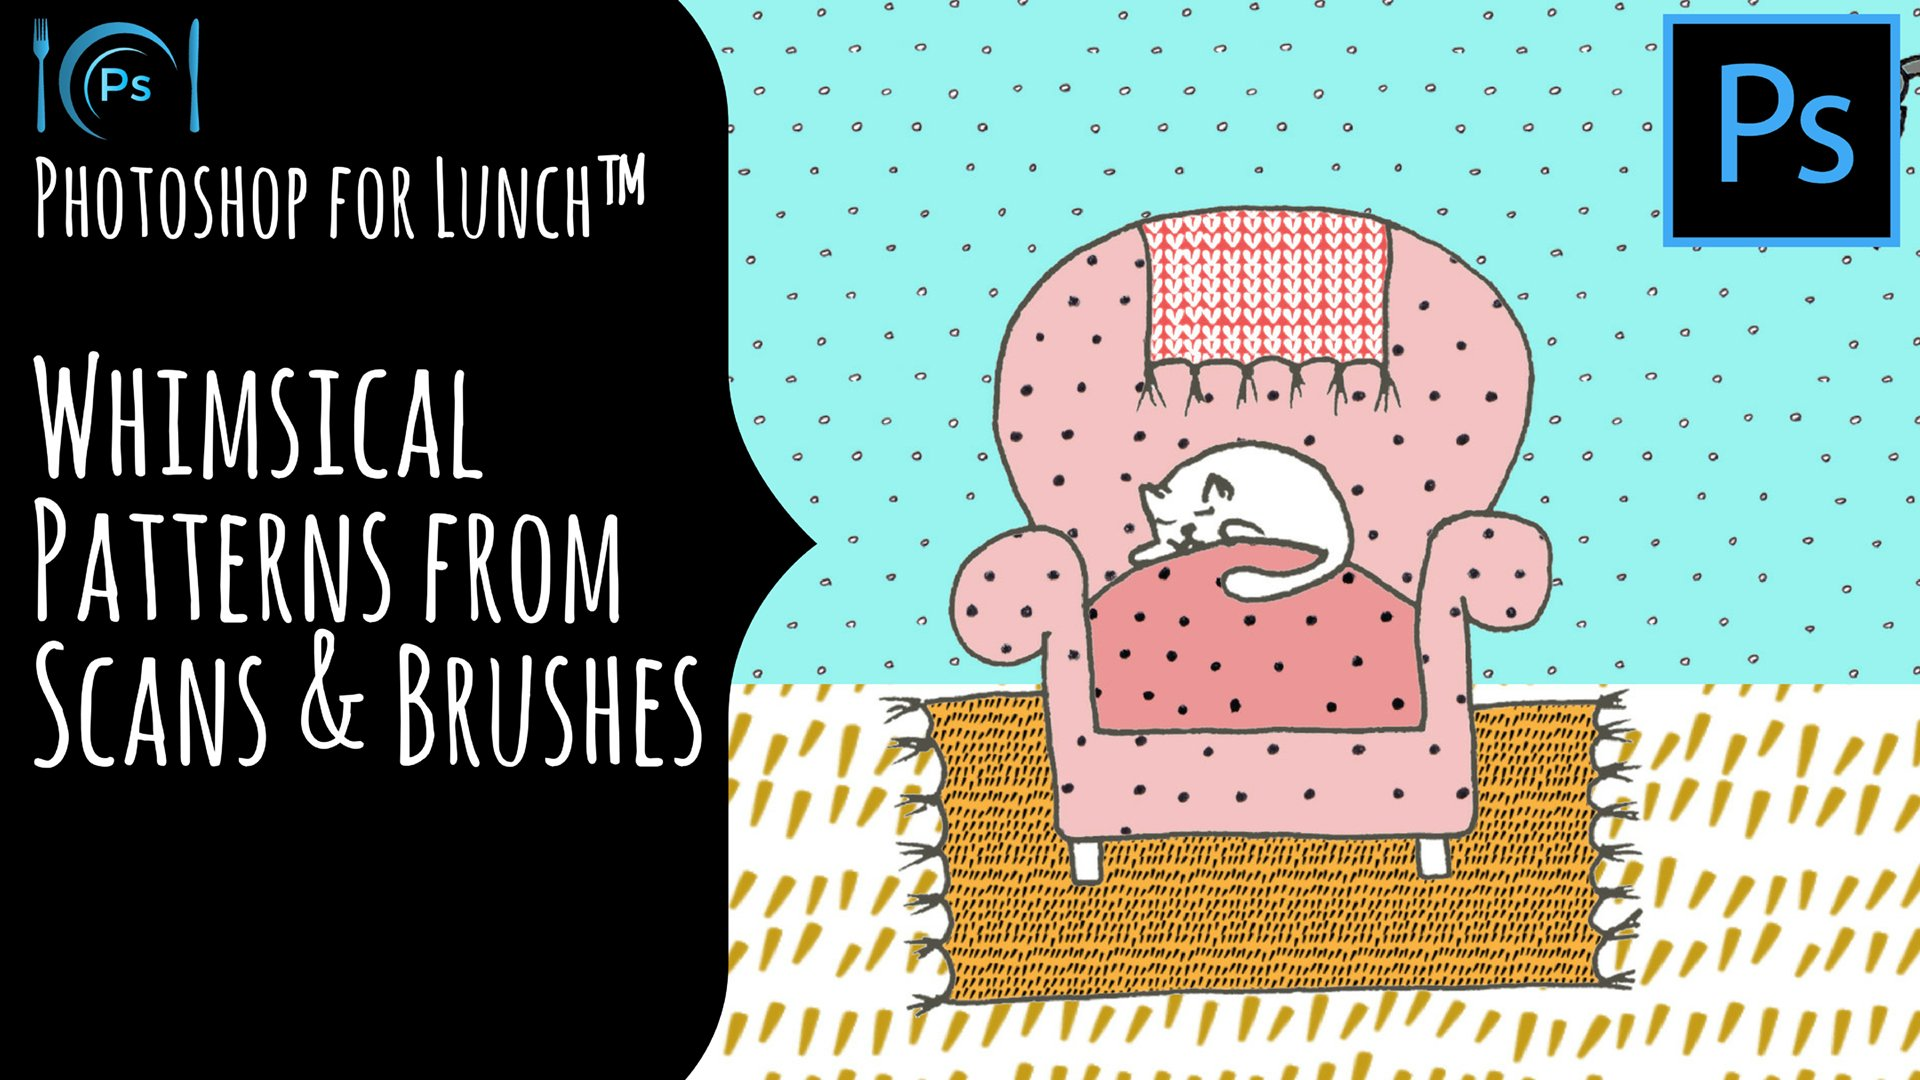 Photoshop for Lunch™ - Sketches & Brushes to Whimsical